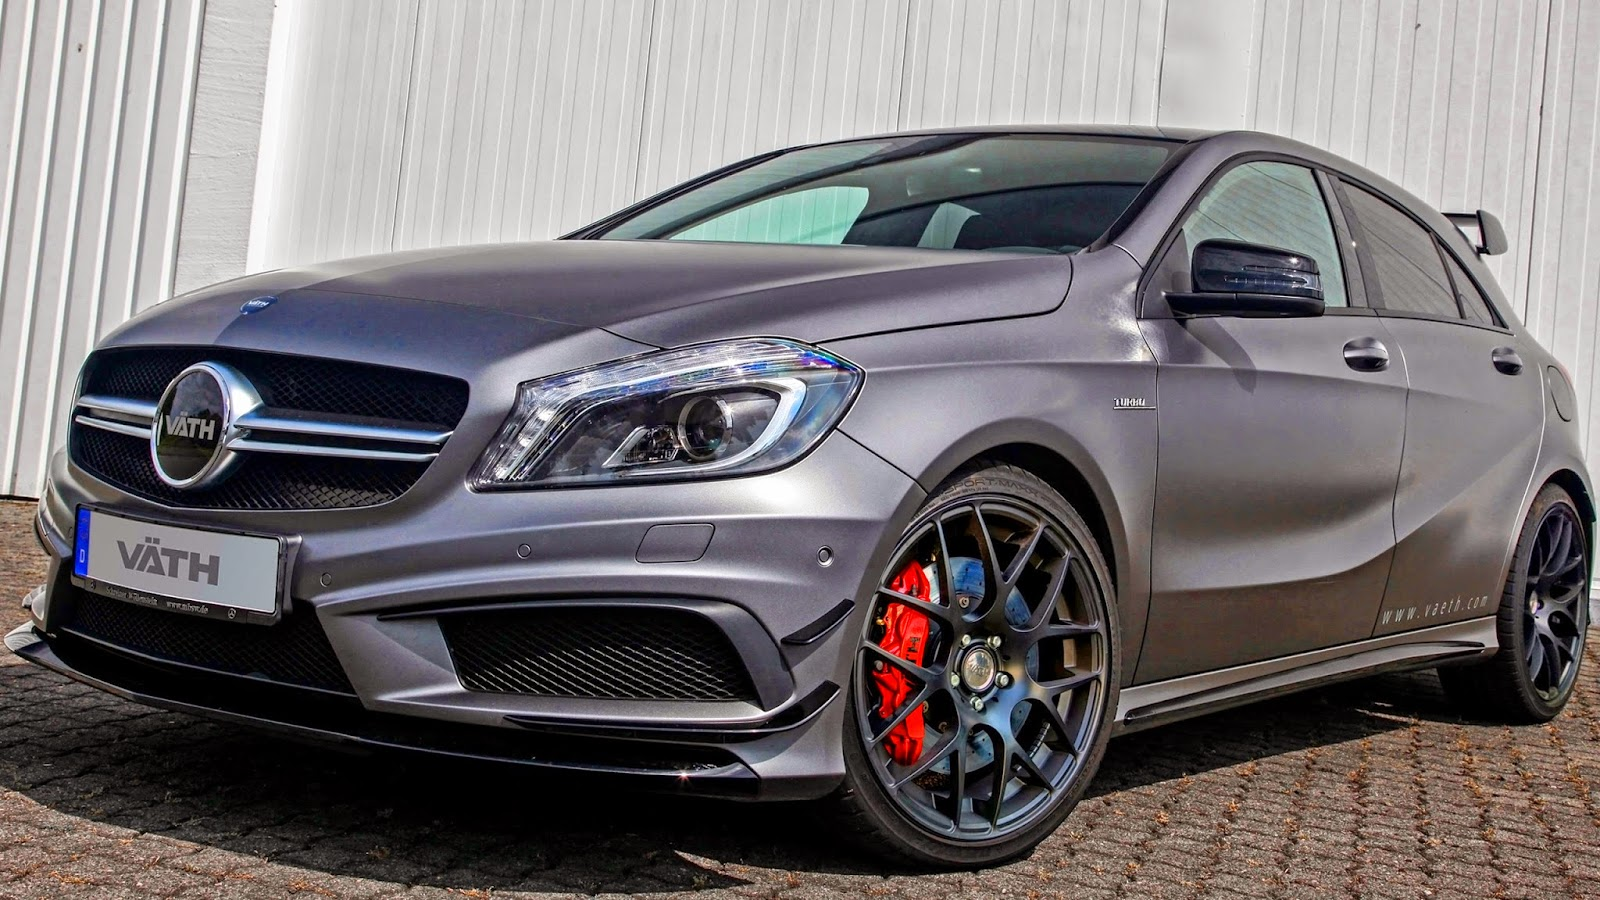 vaeth mercedes benz a 45 s amg 2014 aro 20 2 0 turbo 425